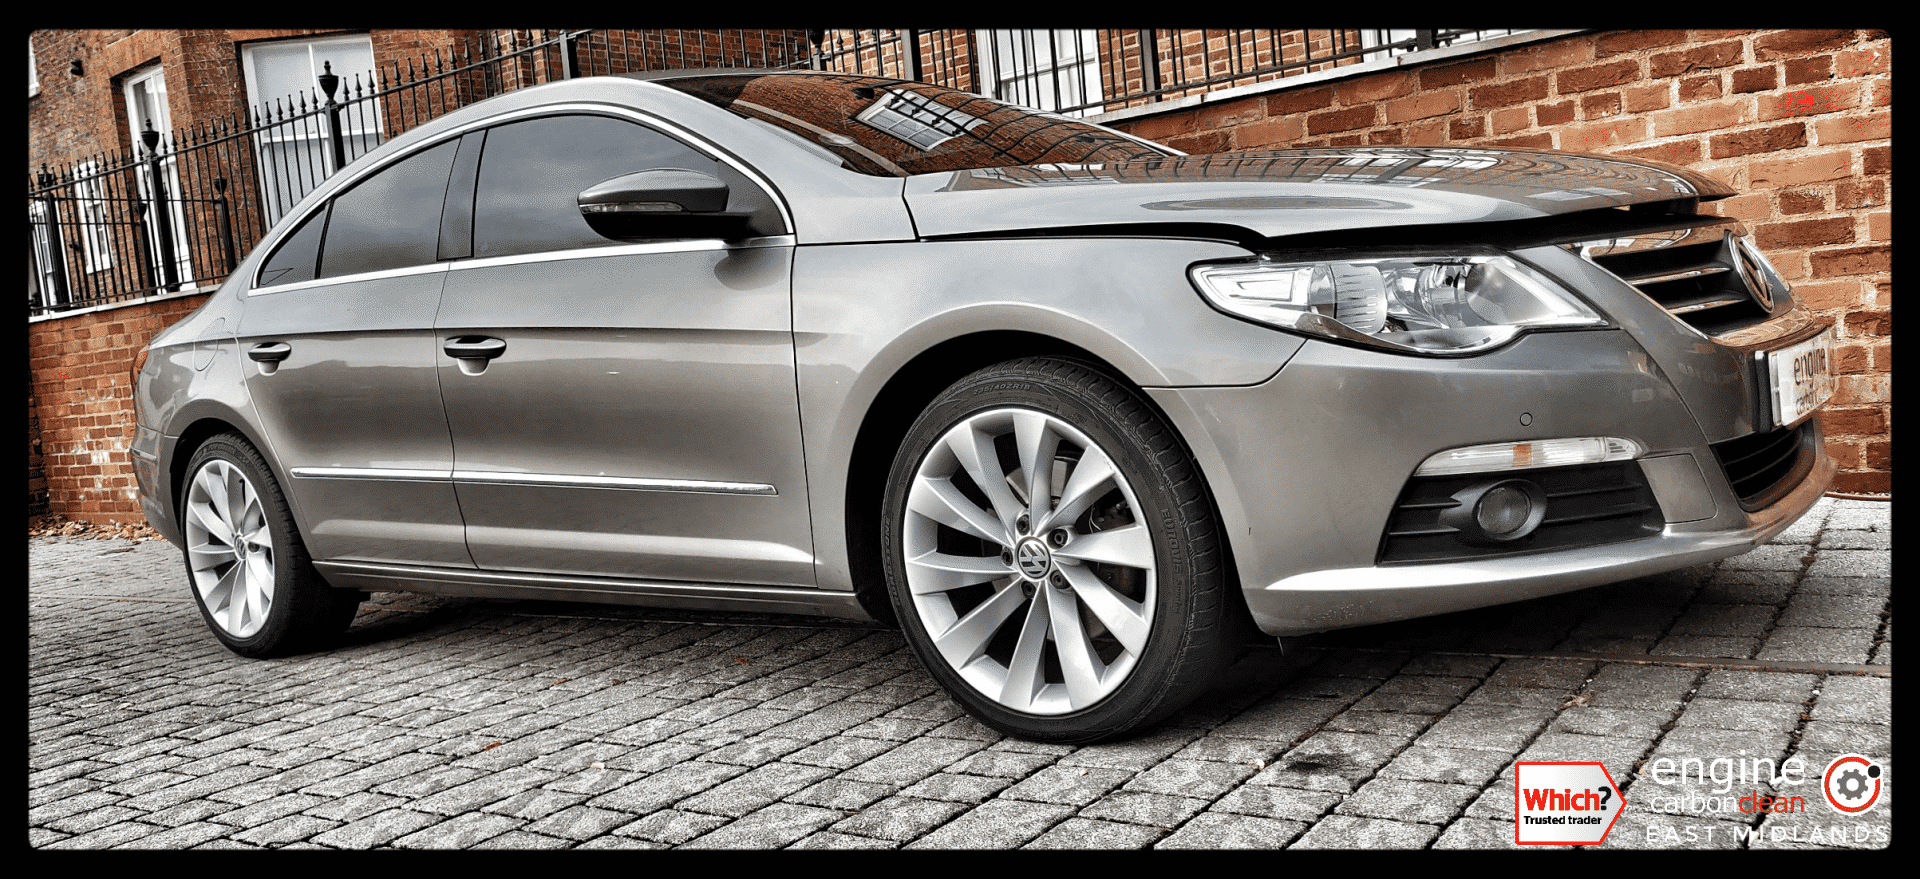 Diagnostic Consultation and Engine Carbon Clean - VW Passat CC 2.0 TDI (2010 - 79,404 miles)